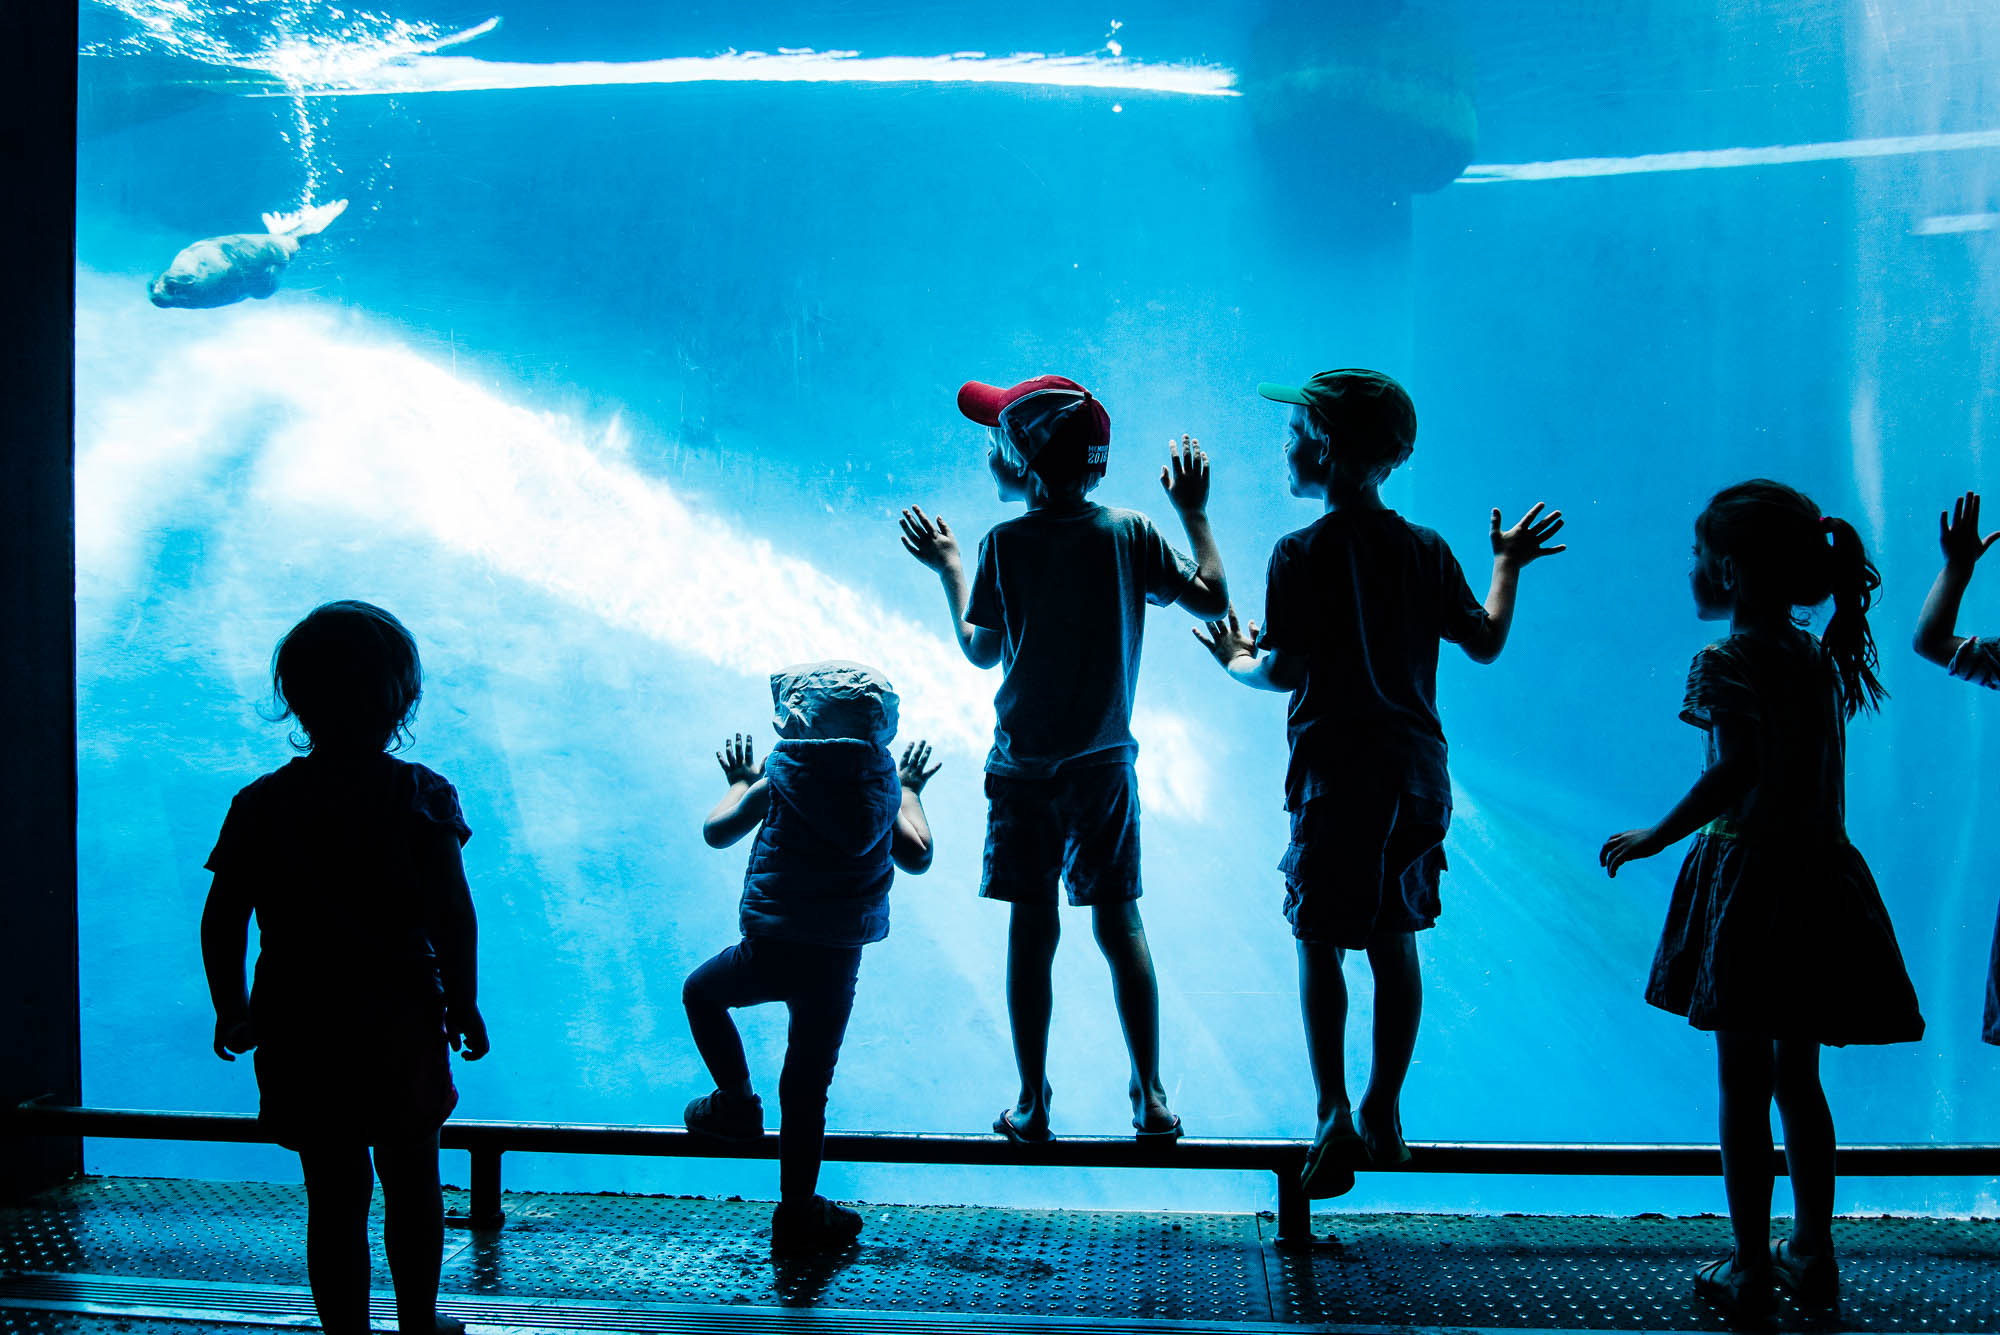 photography-mentoring-blogging-tips-kids-silhouttes-at-the-aquarium.jpg